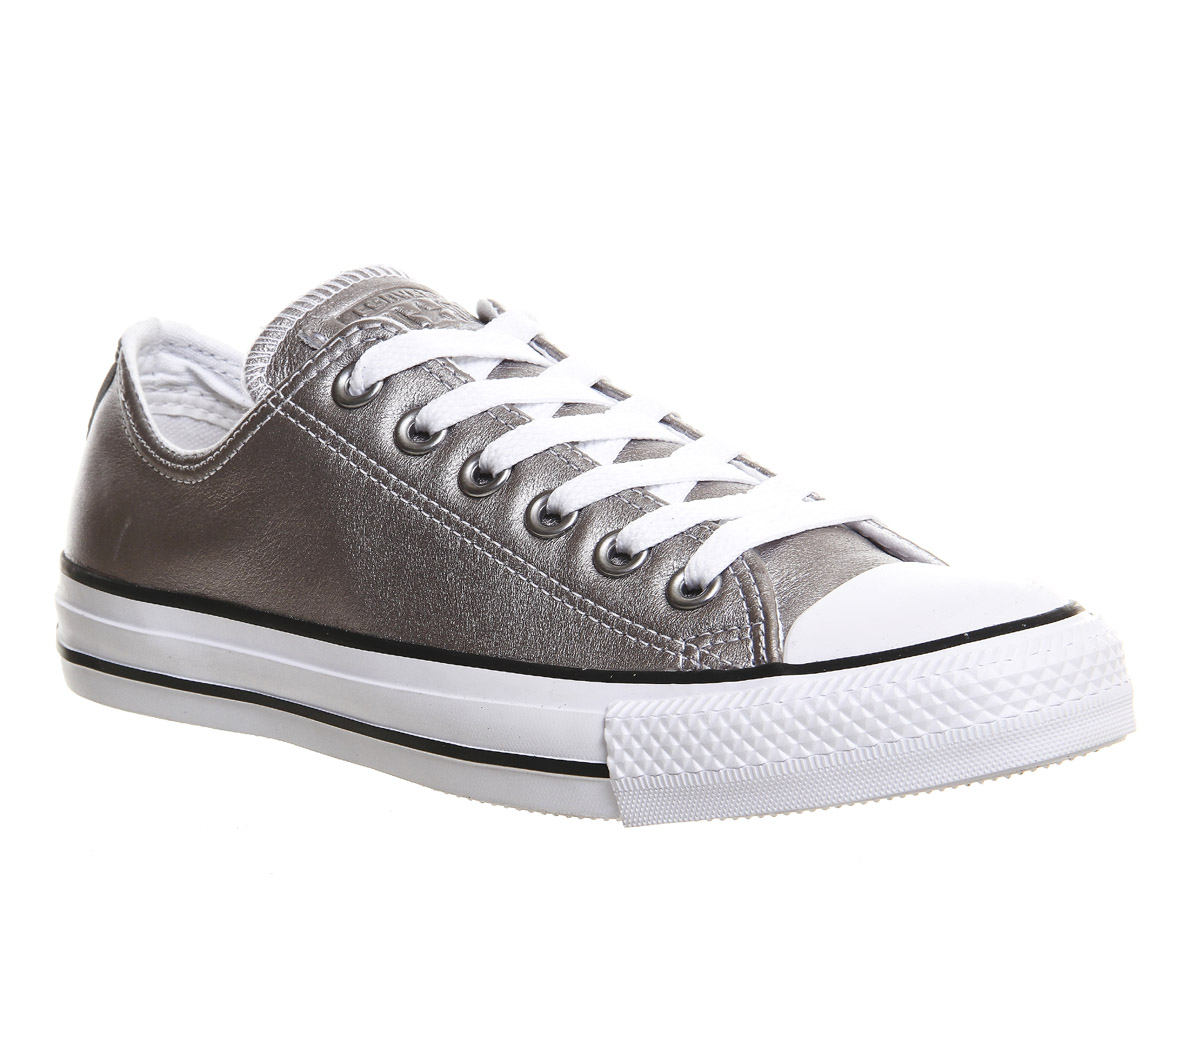 b3c80c1750b9 Sentinel Converse All Star Low Leather New Silver Exclusive Trainers Shoes.  Sentinel Thumbnail 2